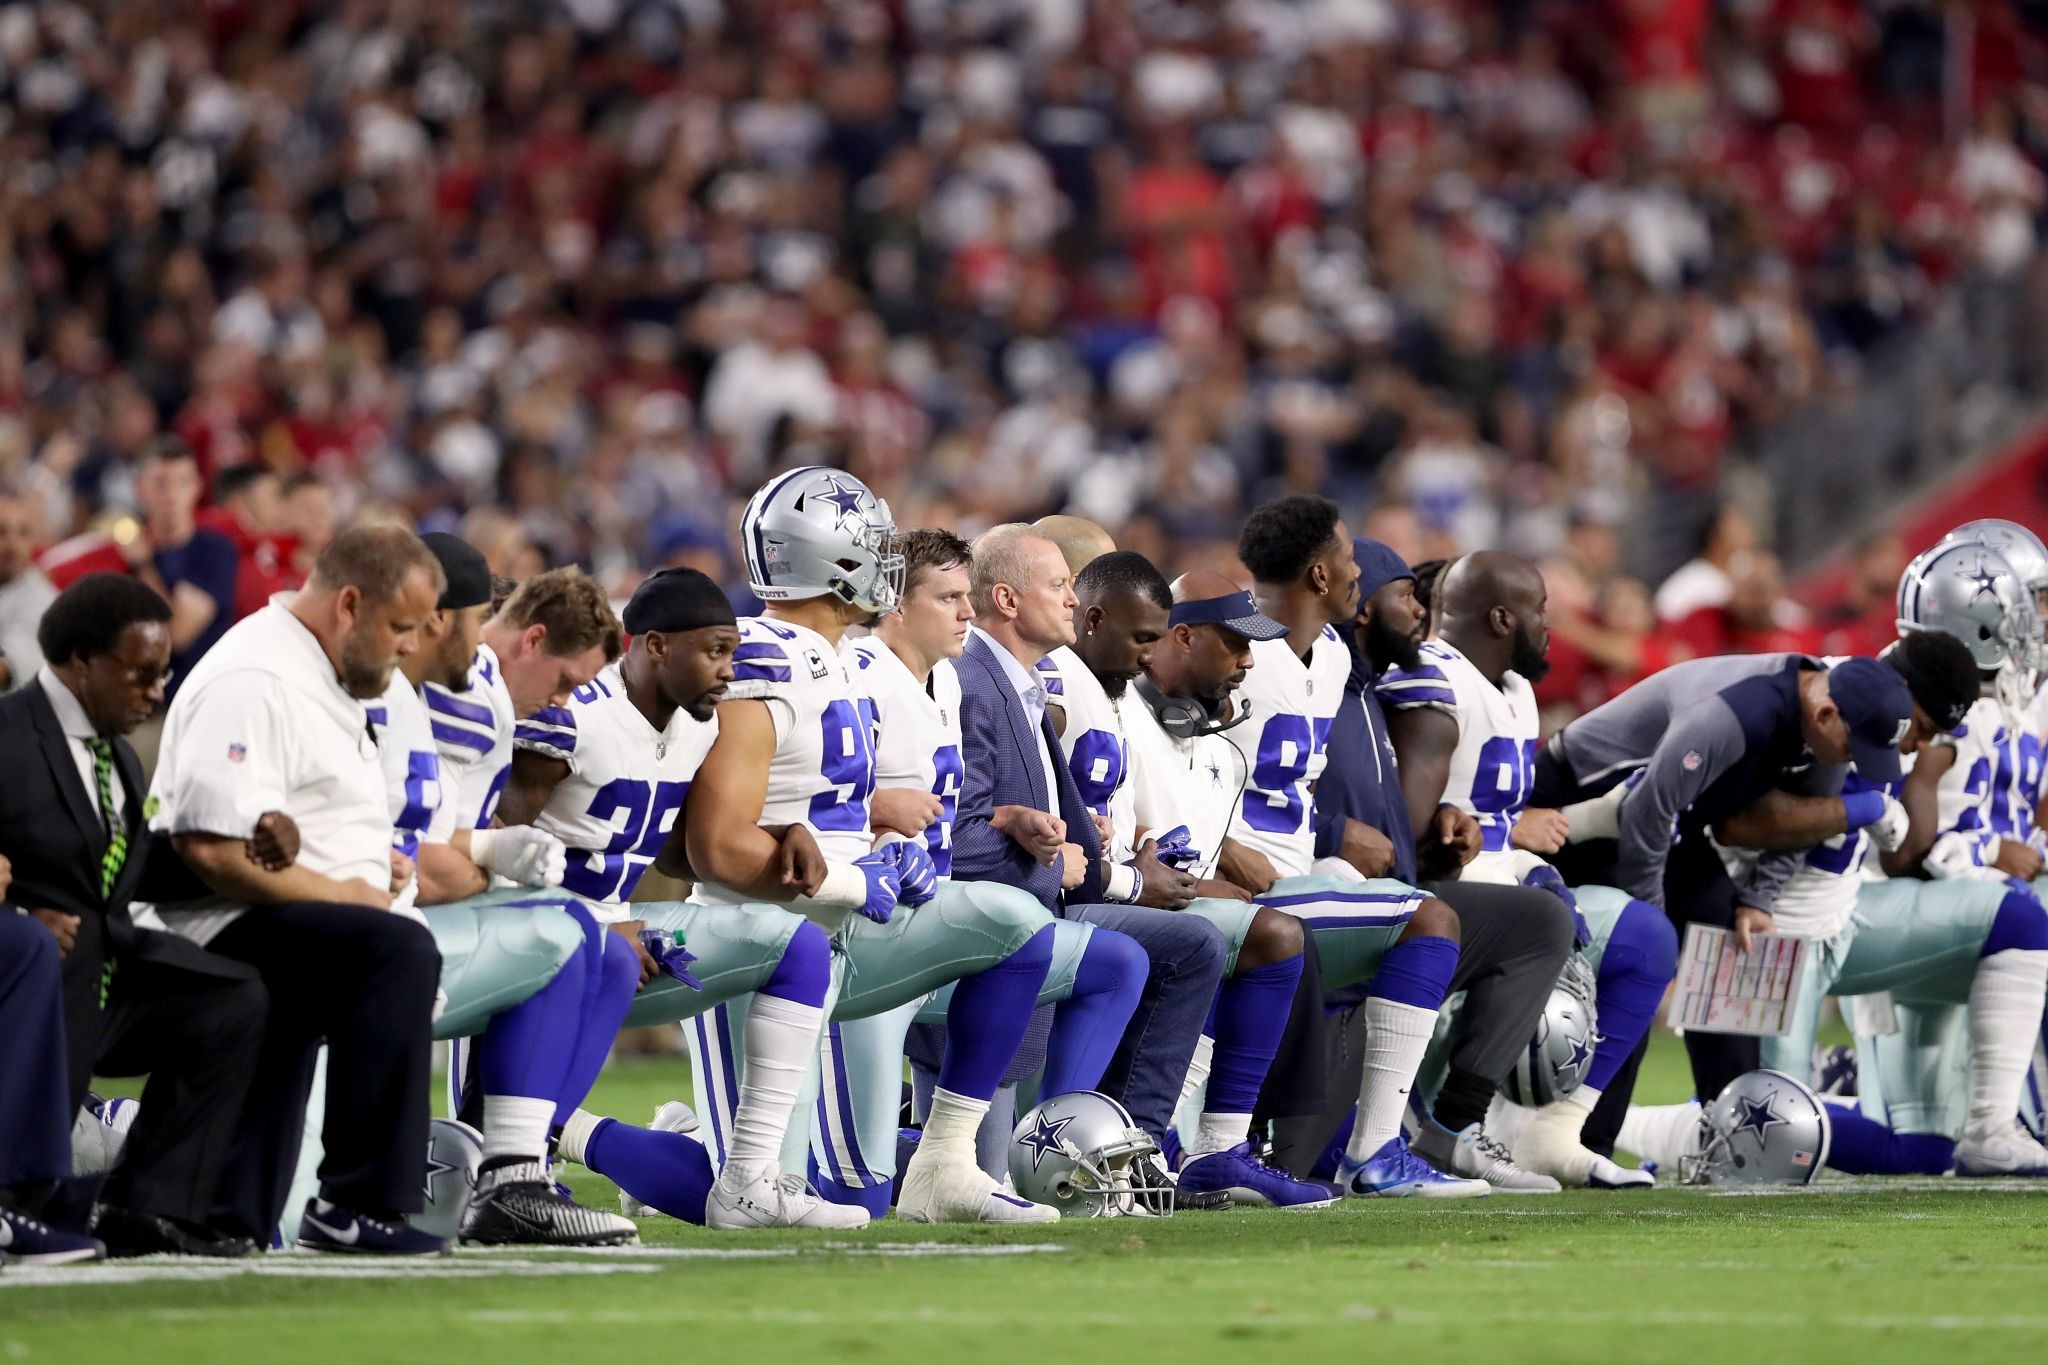 2fa1c037061 mynorthwest.com Union files charges against Cowboys owner Jerry Jones over  stance on kneeling protests